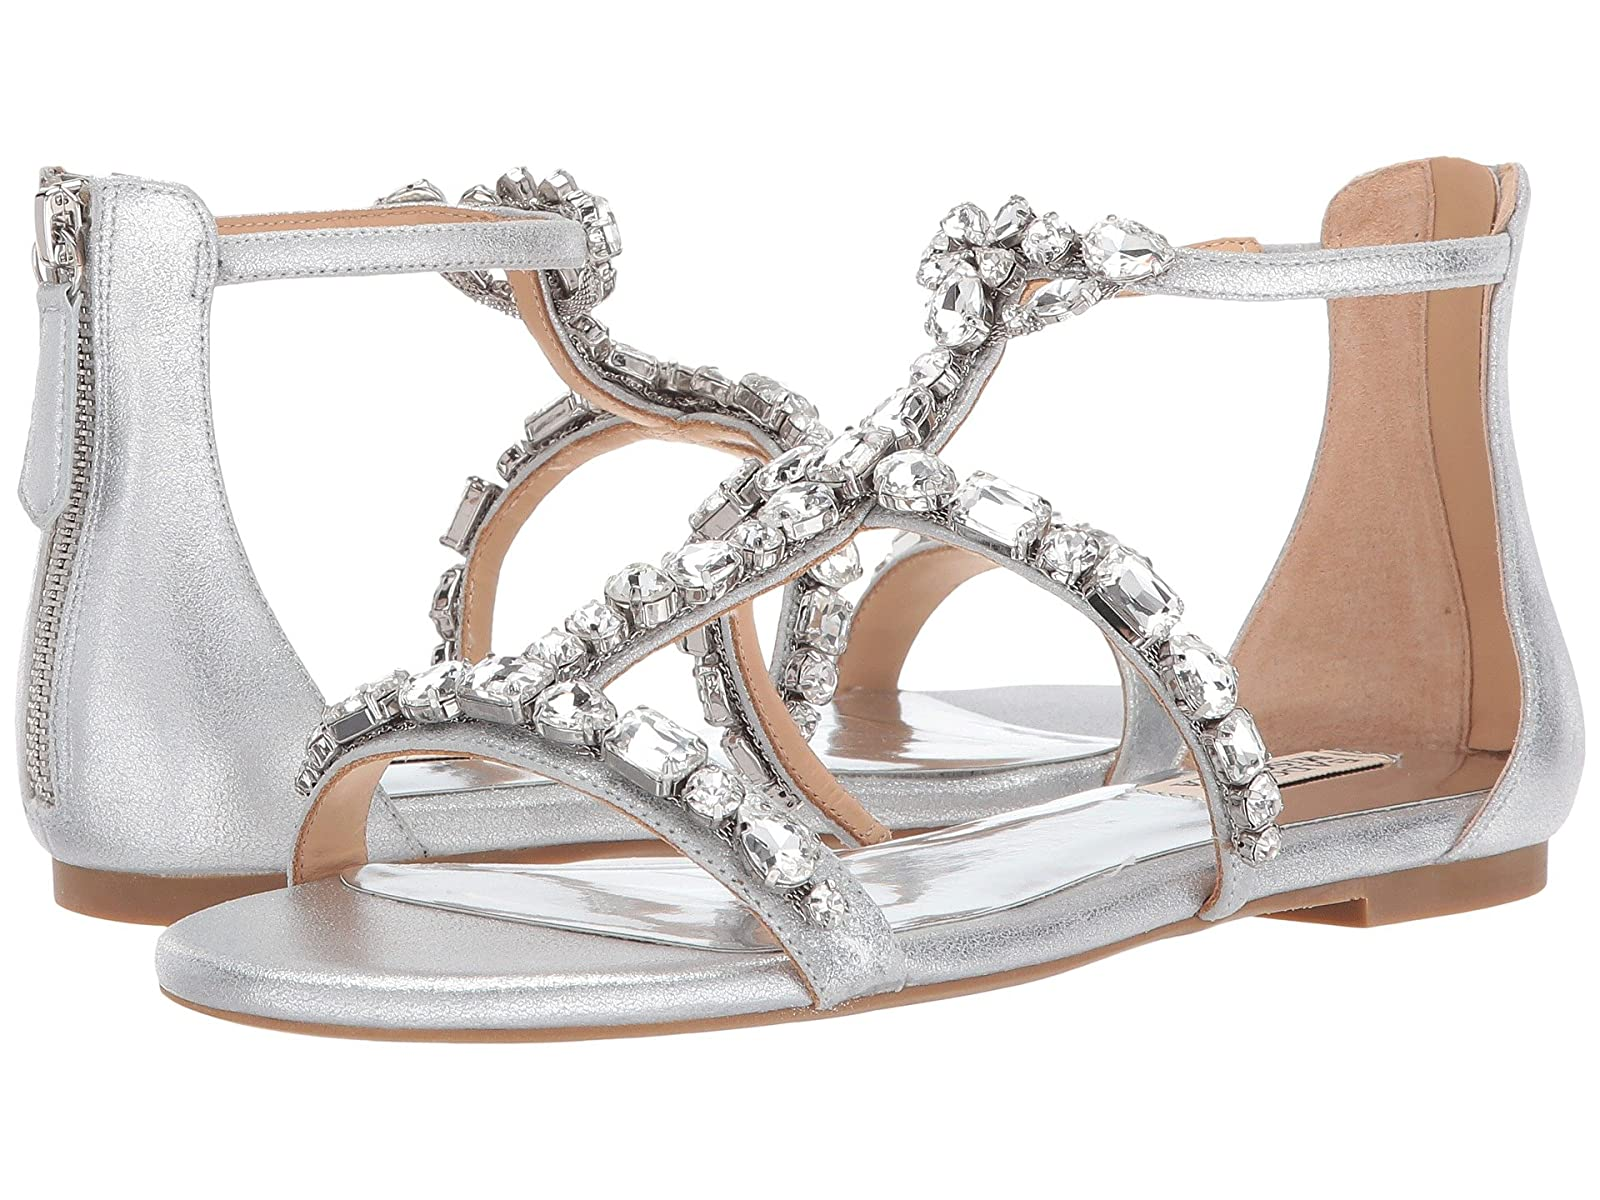 Badgley Mischka WarenCheap and distinctive eye-catching shoes